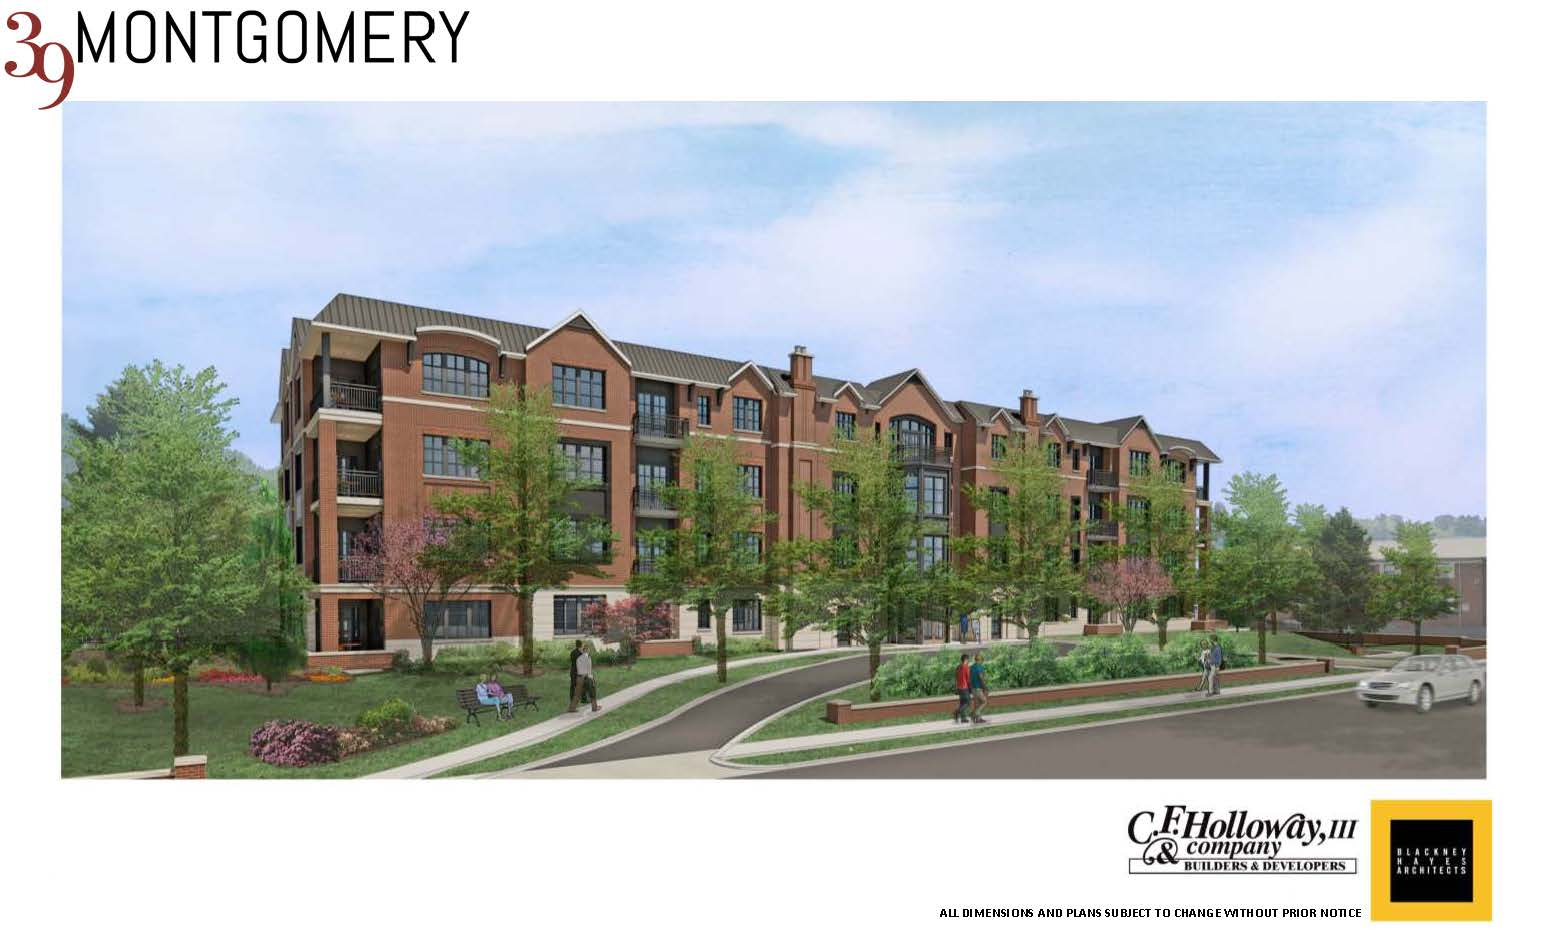 New Condos in Ardmore from Renowned Main Line Homebuilder Set Standard for Luxury Living